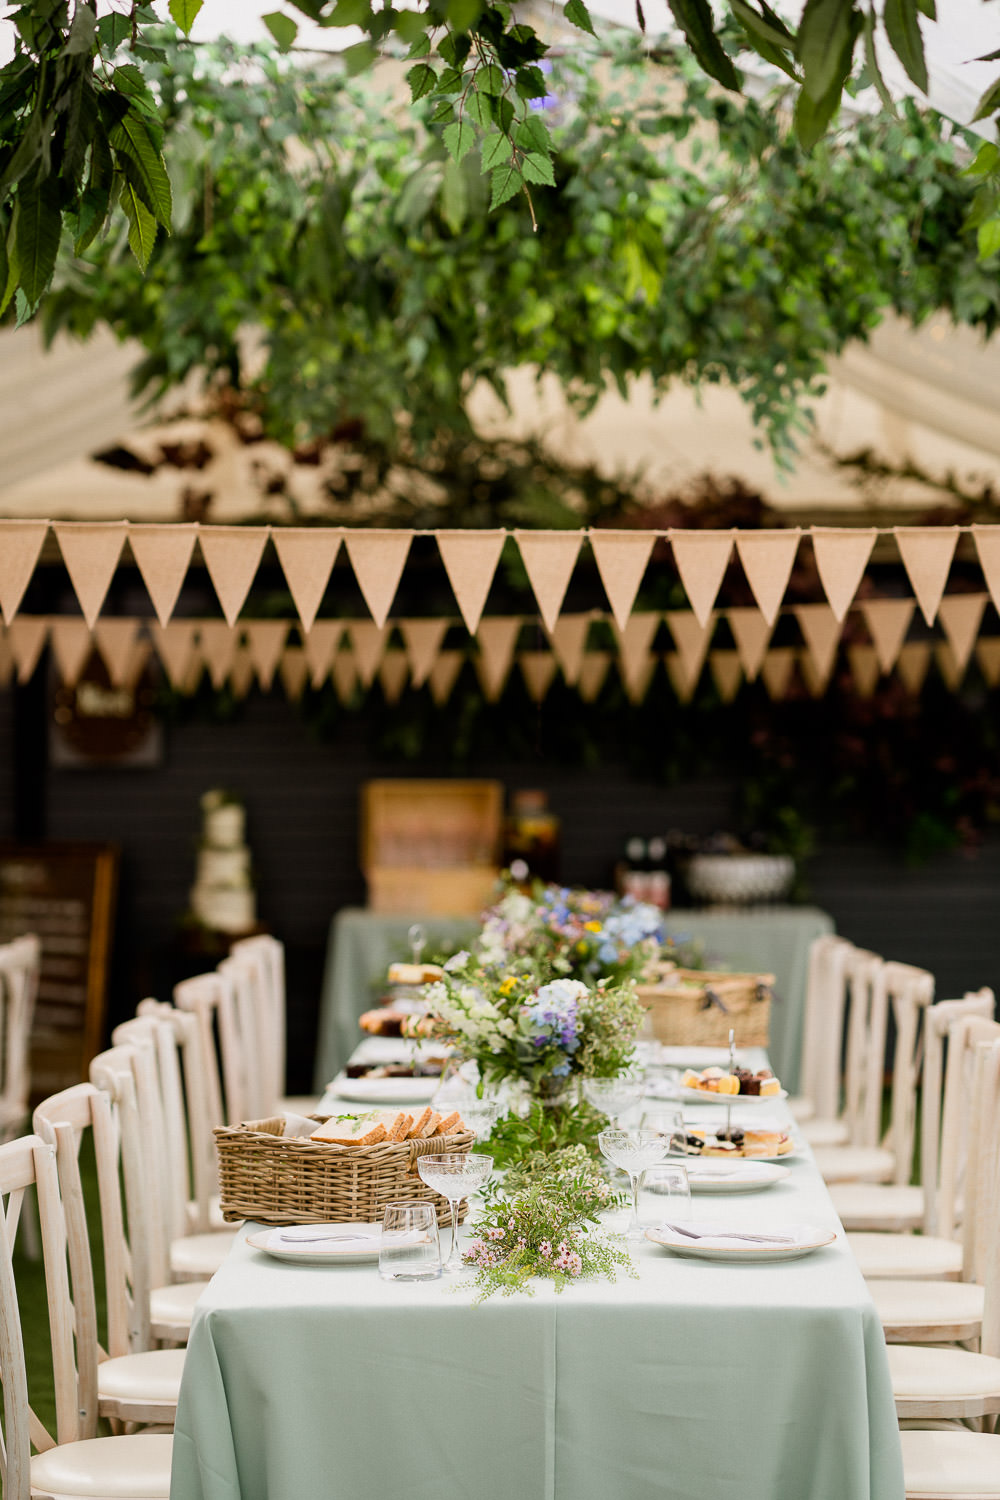 Table Decor Garland Flowers Centrpiece Long Tables Bunting Foliage Hoops Holford Estate Wedding Voyteck Photography